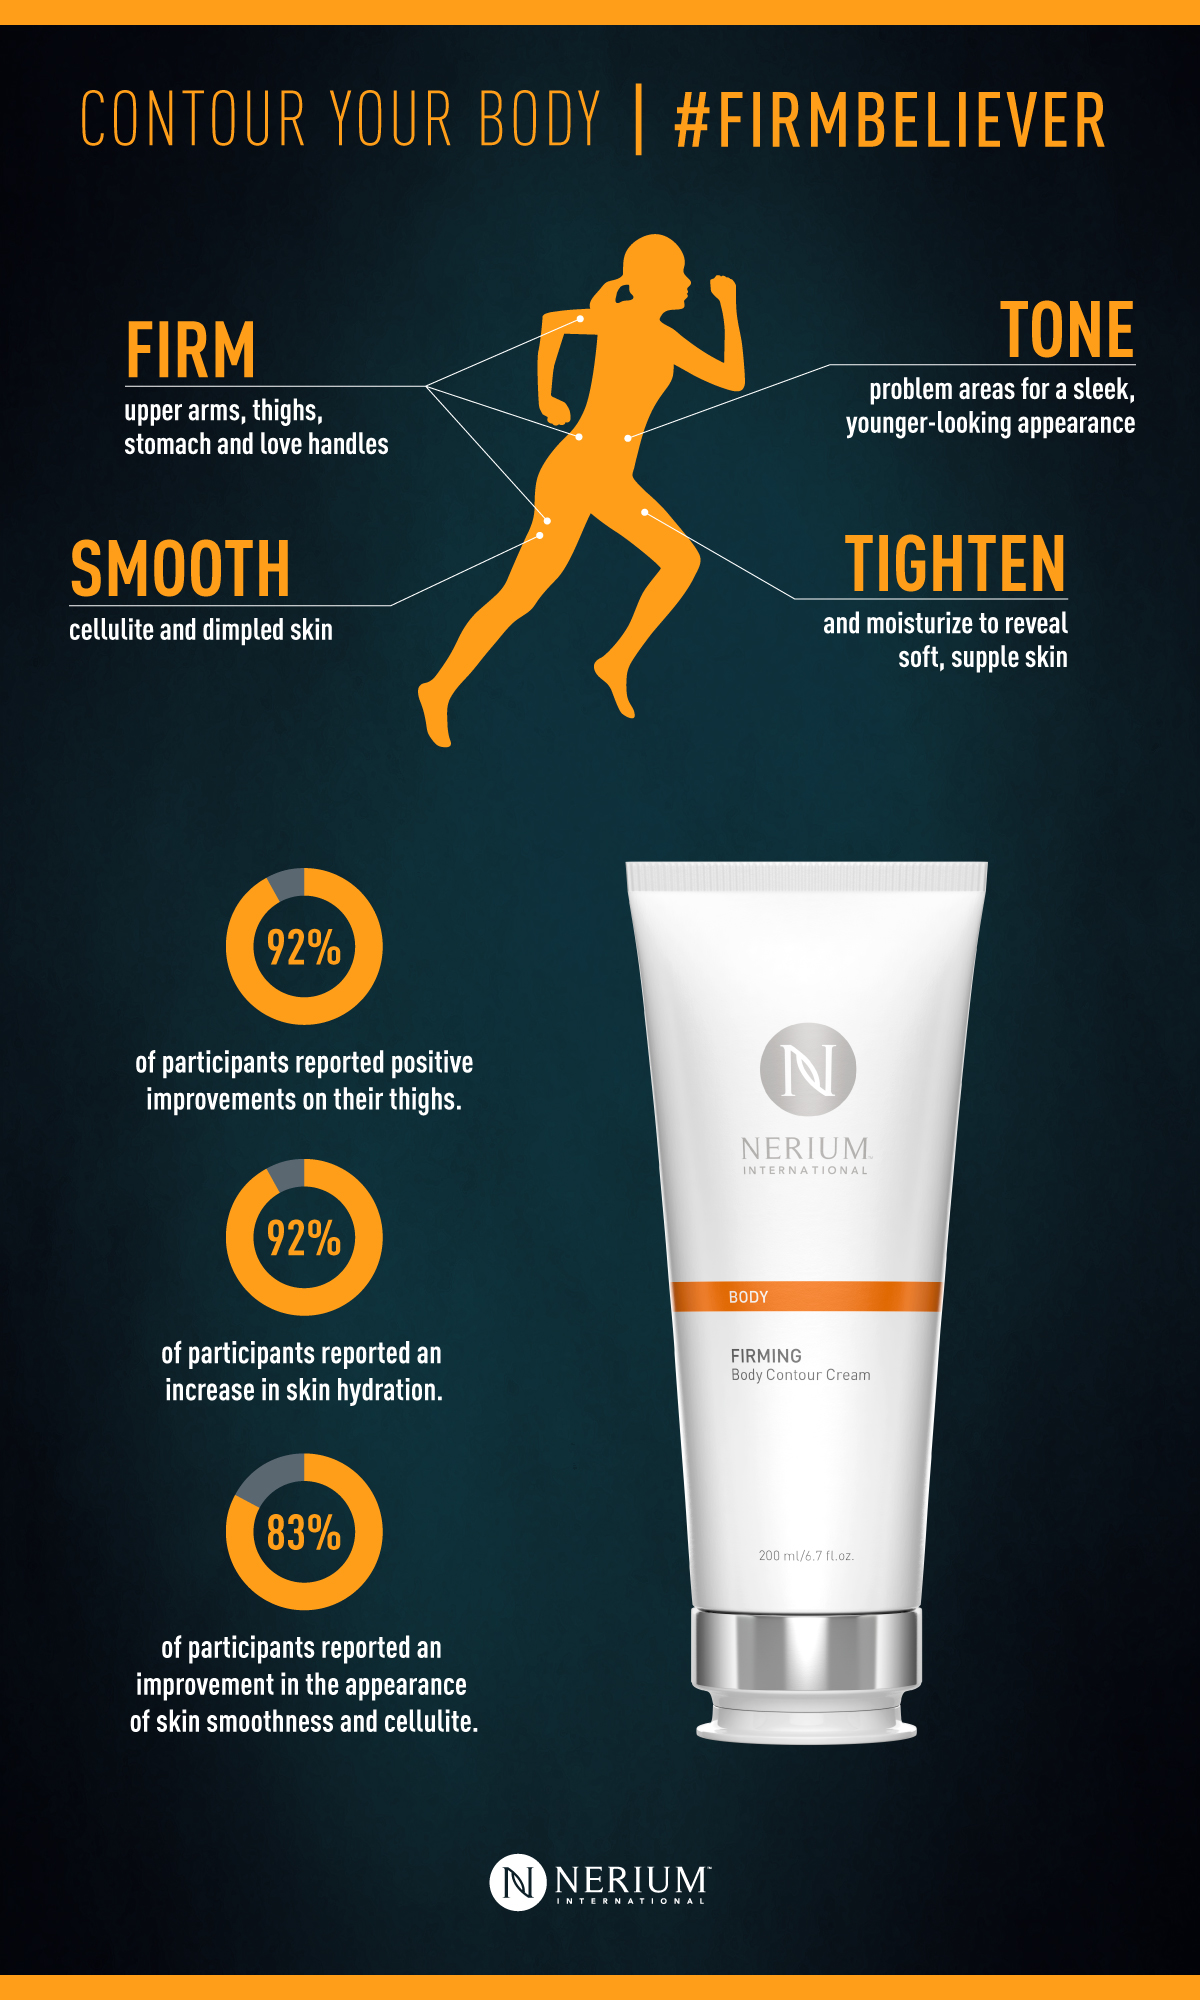 Nerium Firming Body Contour Cream